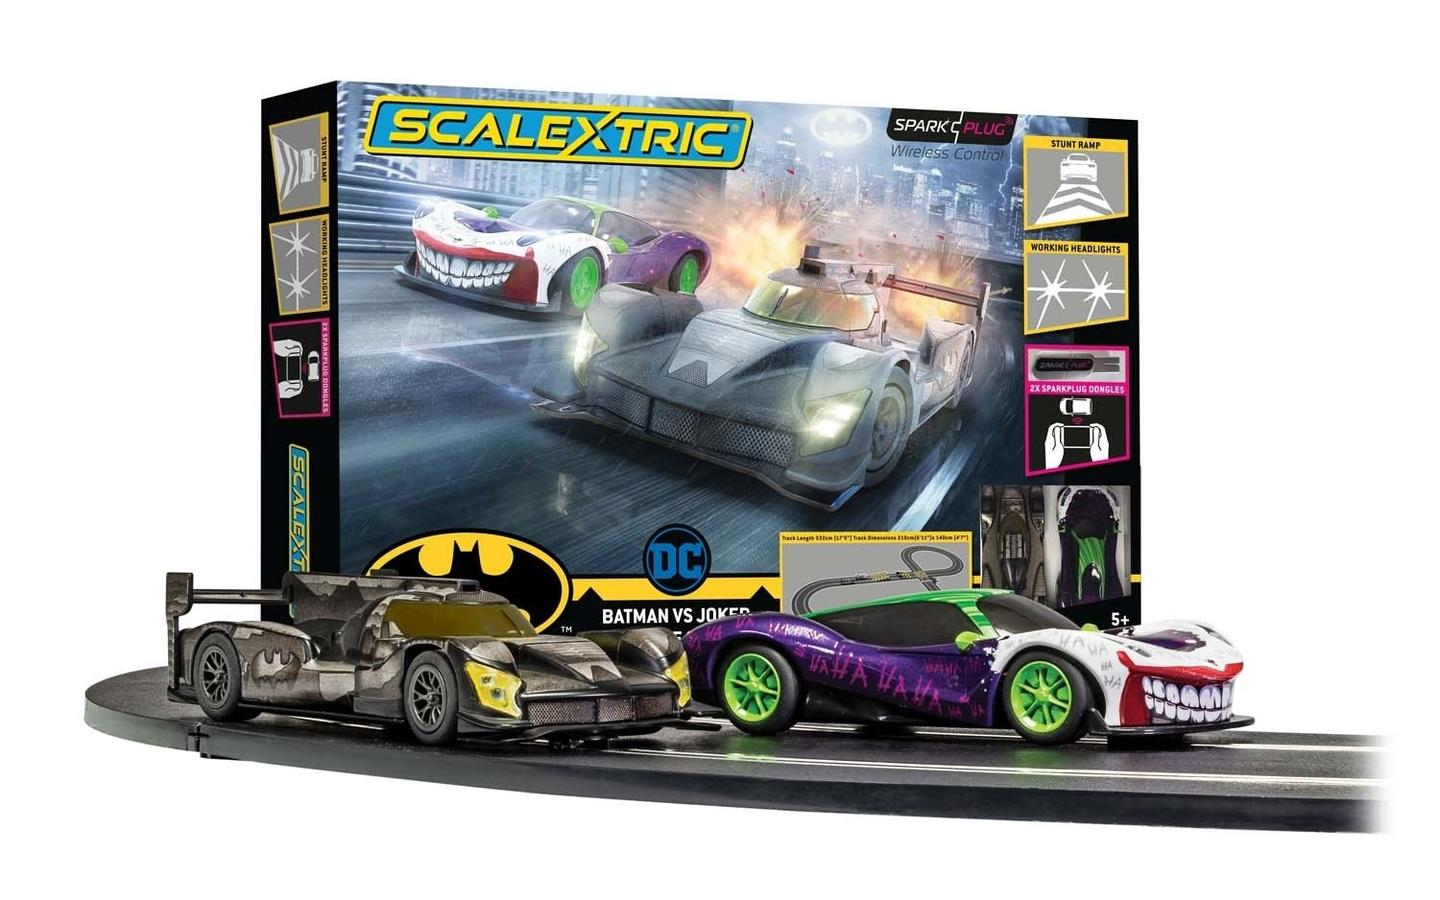 Batman can race against one of his most colorful foes, the Joker